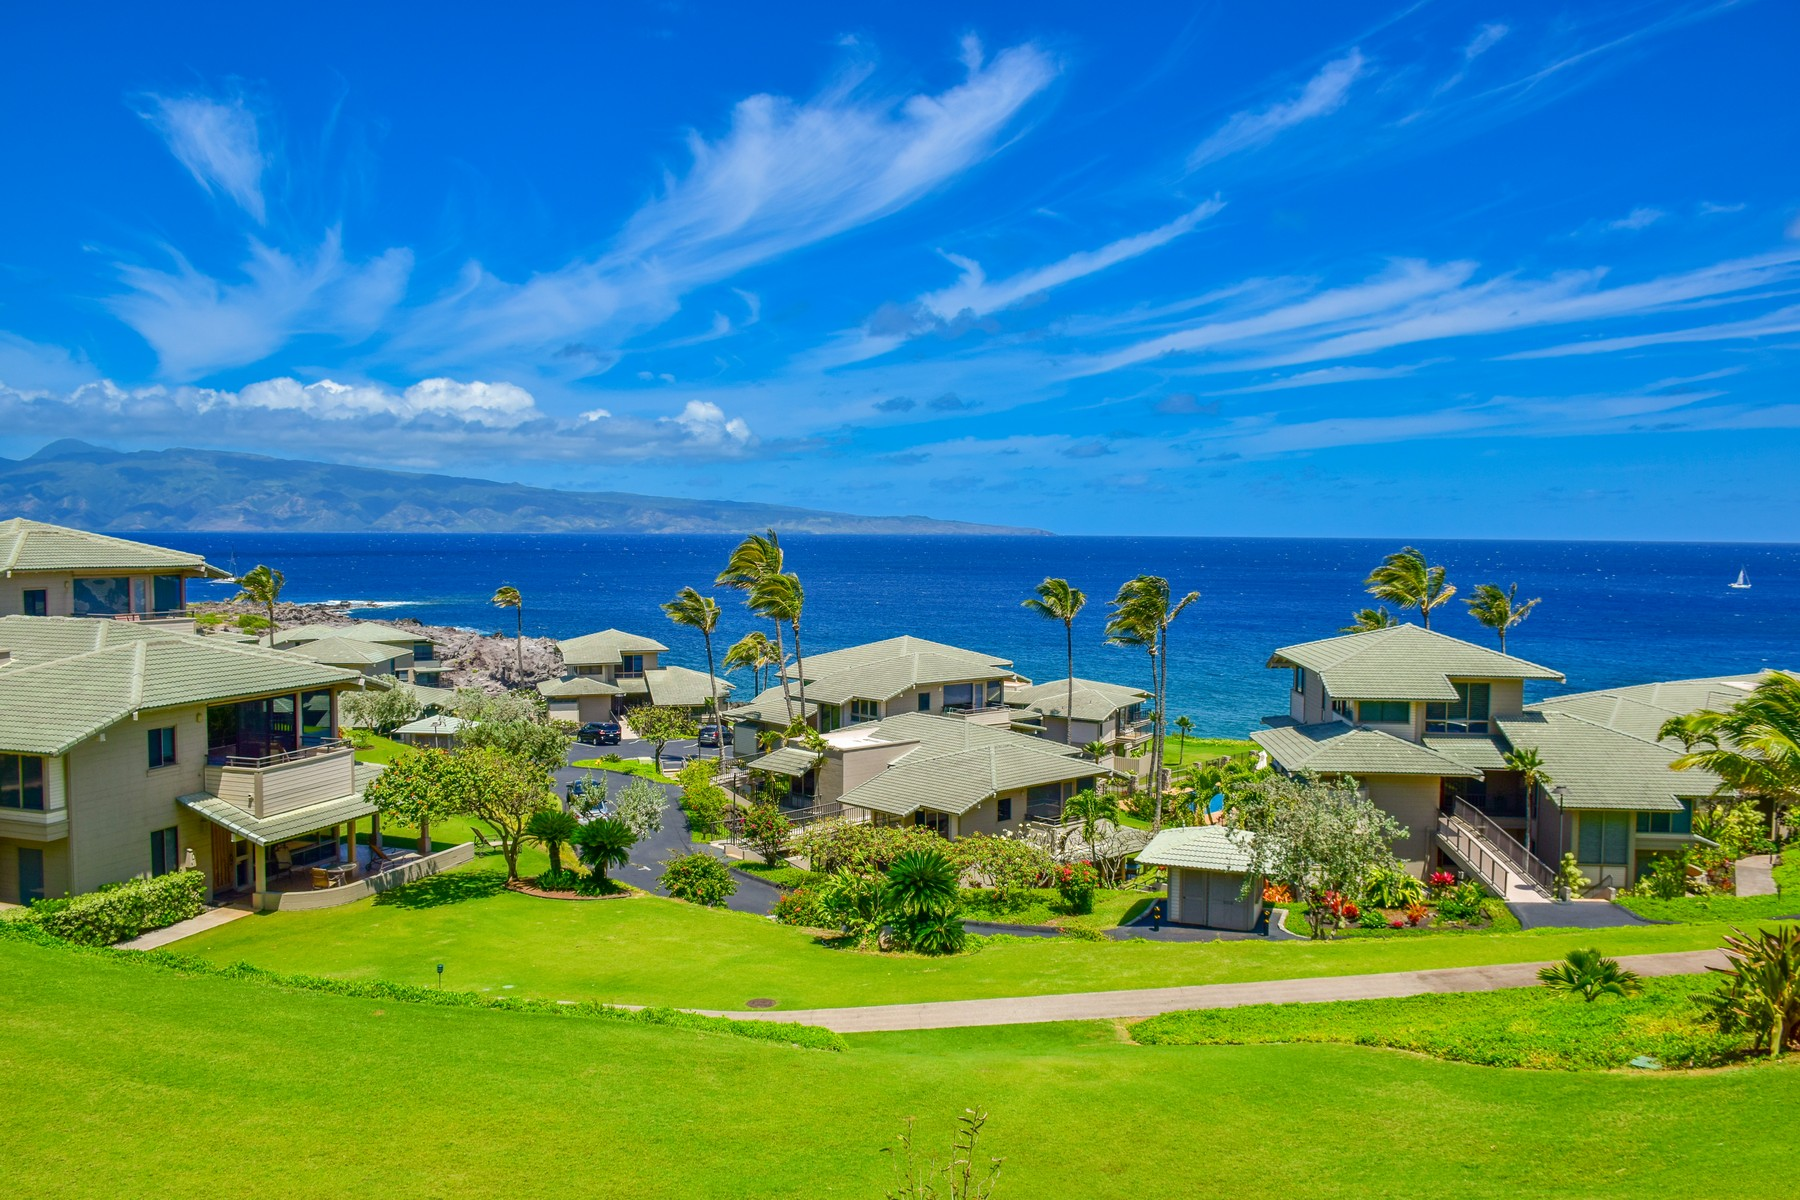 Condominium for Sale at Renovated oceanview villa in Kapalua, Maui 500 Bay Drive, Kapalua Bay Villa 14B1 Kapalua, Hawaii 96761 United States